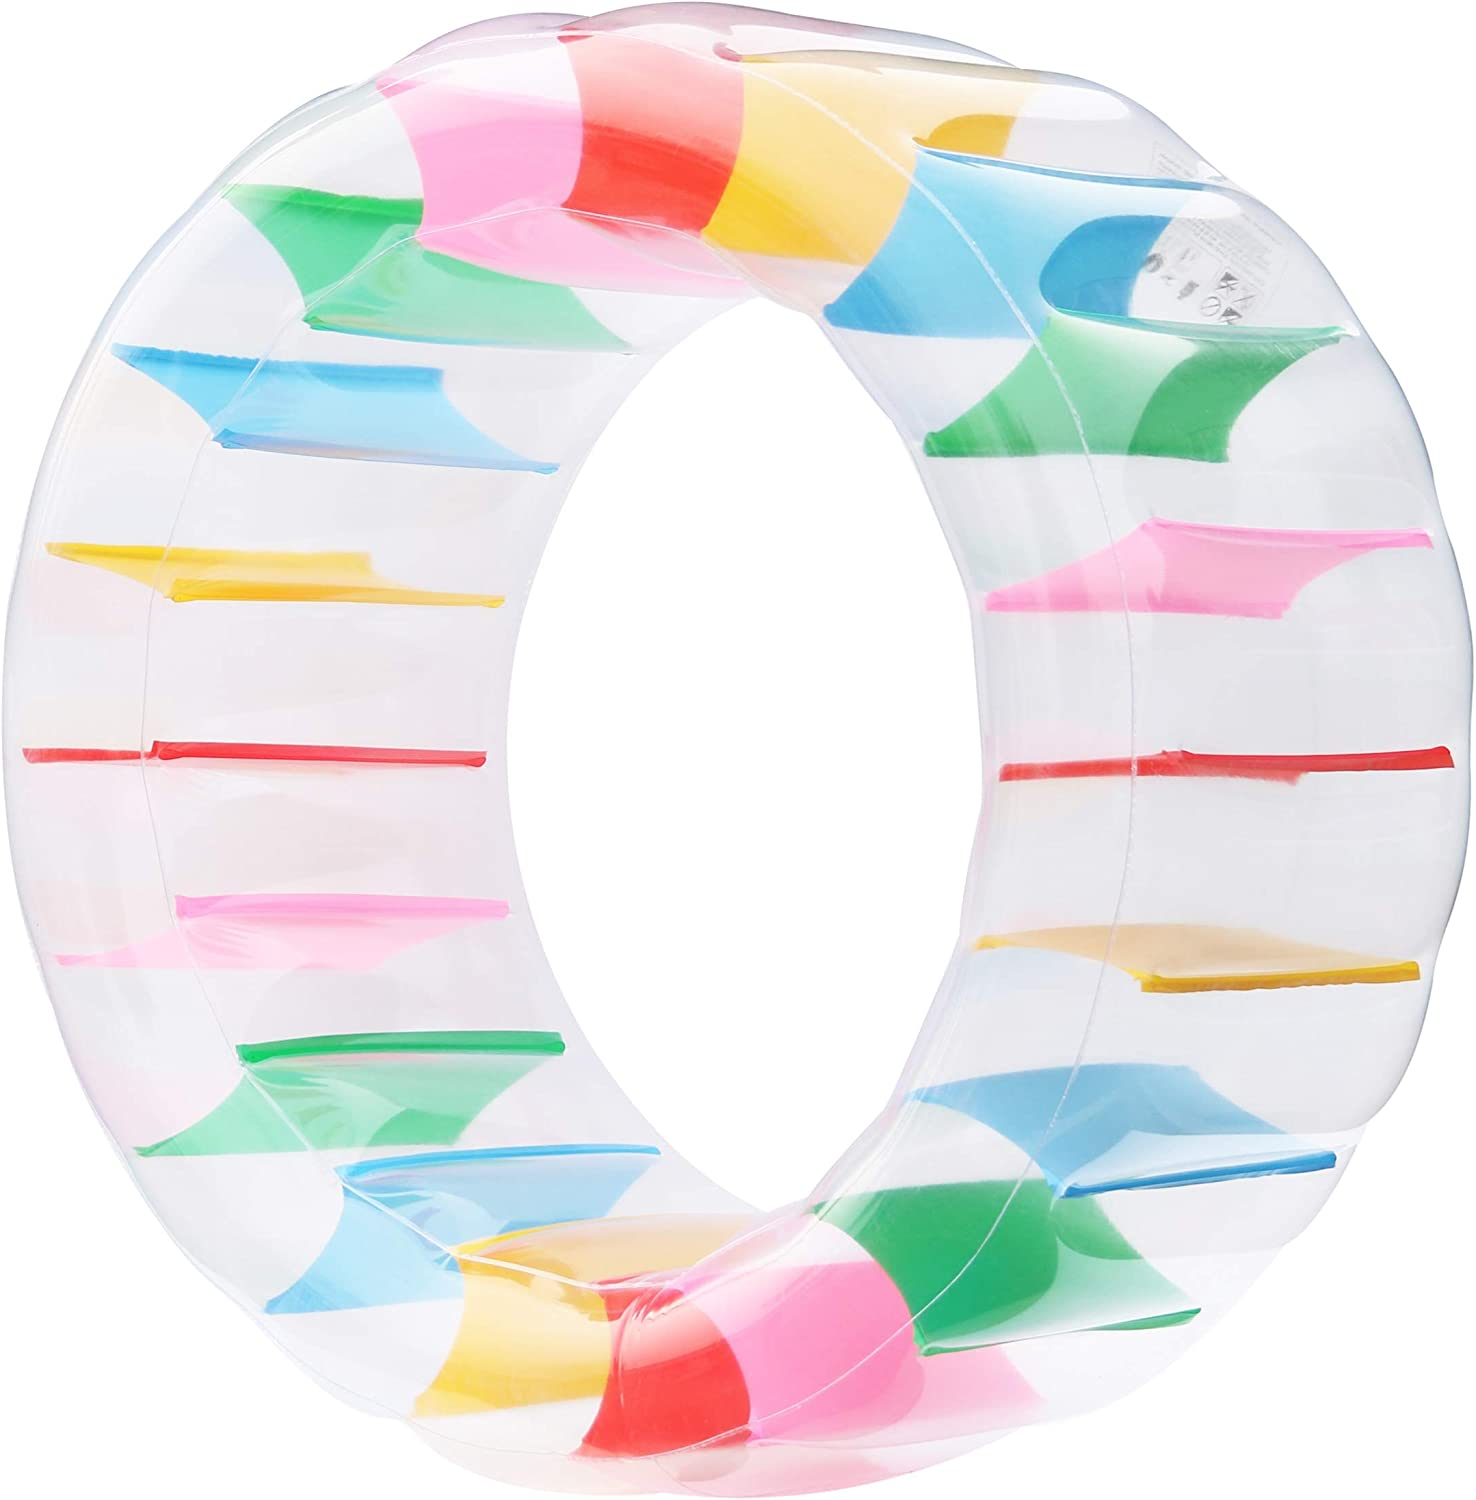 Kurala Inflatable Water Wheel, Giant Roller Float, Colorful Swimming Pool Toy for Kids Adults, Diameter 47